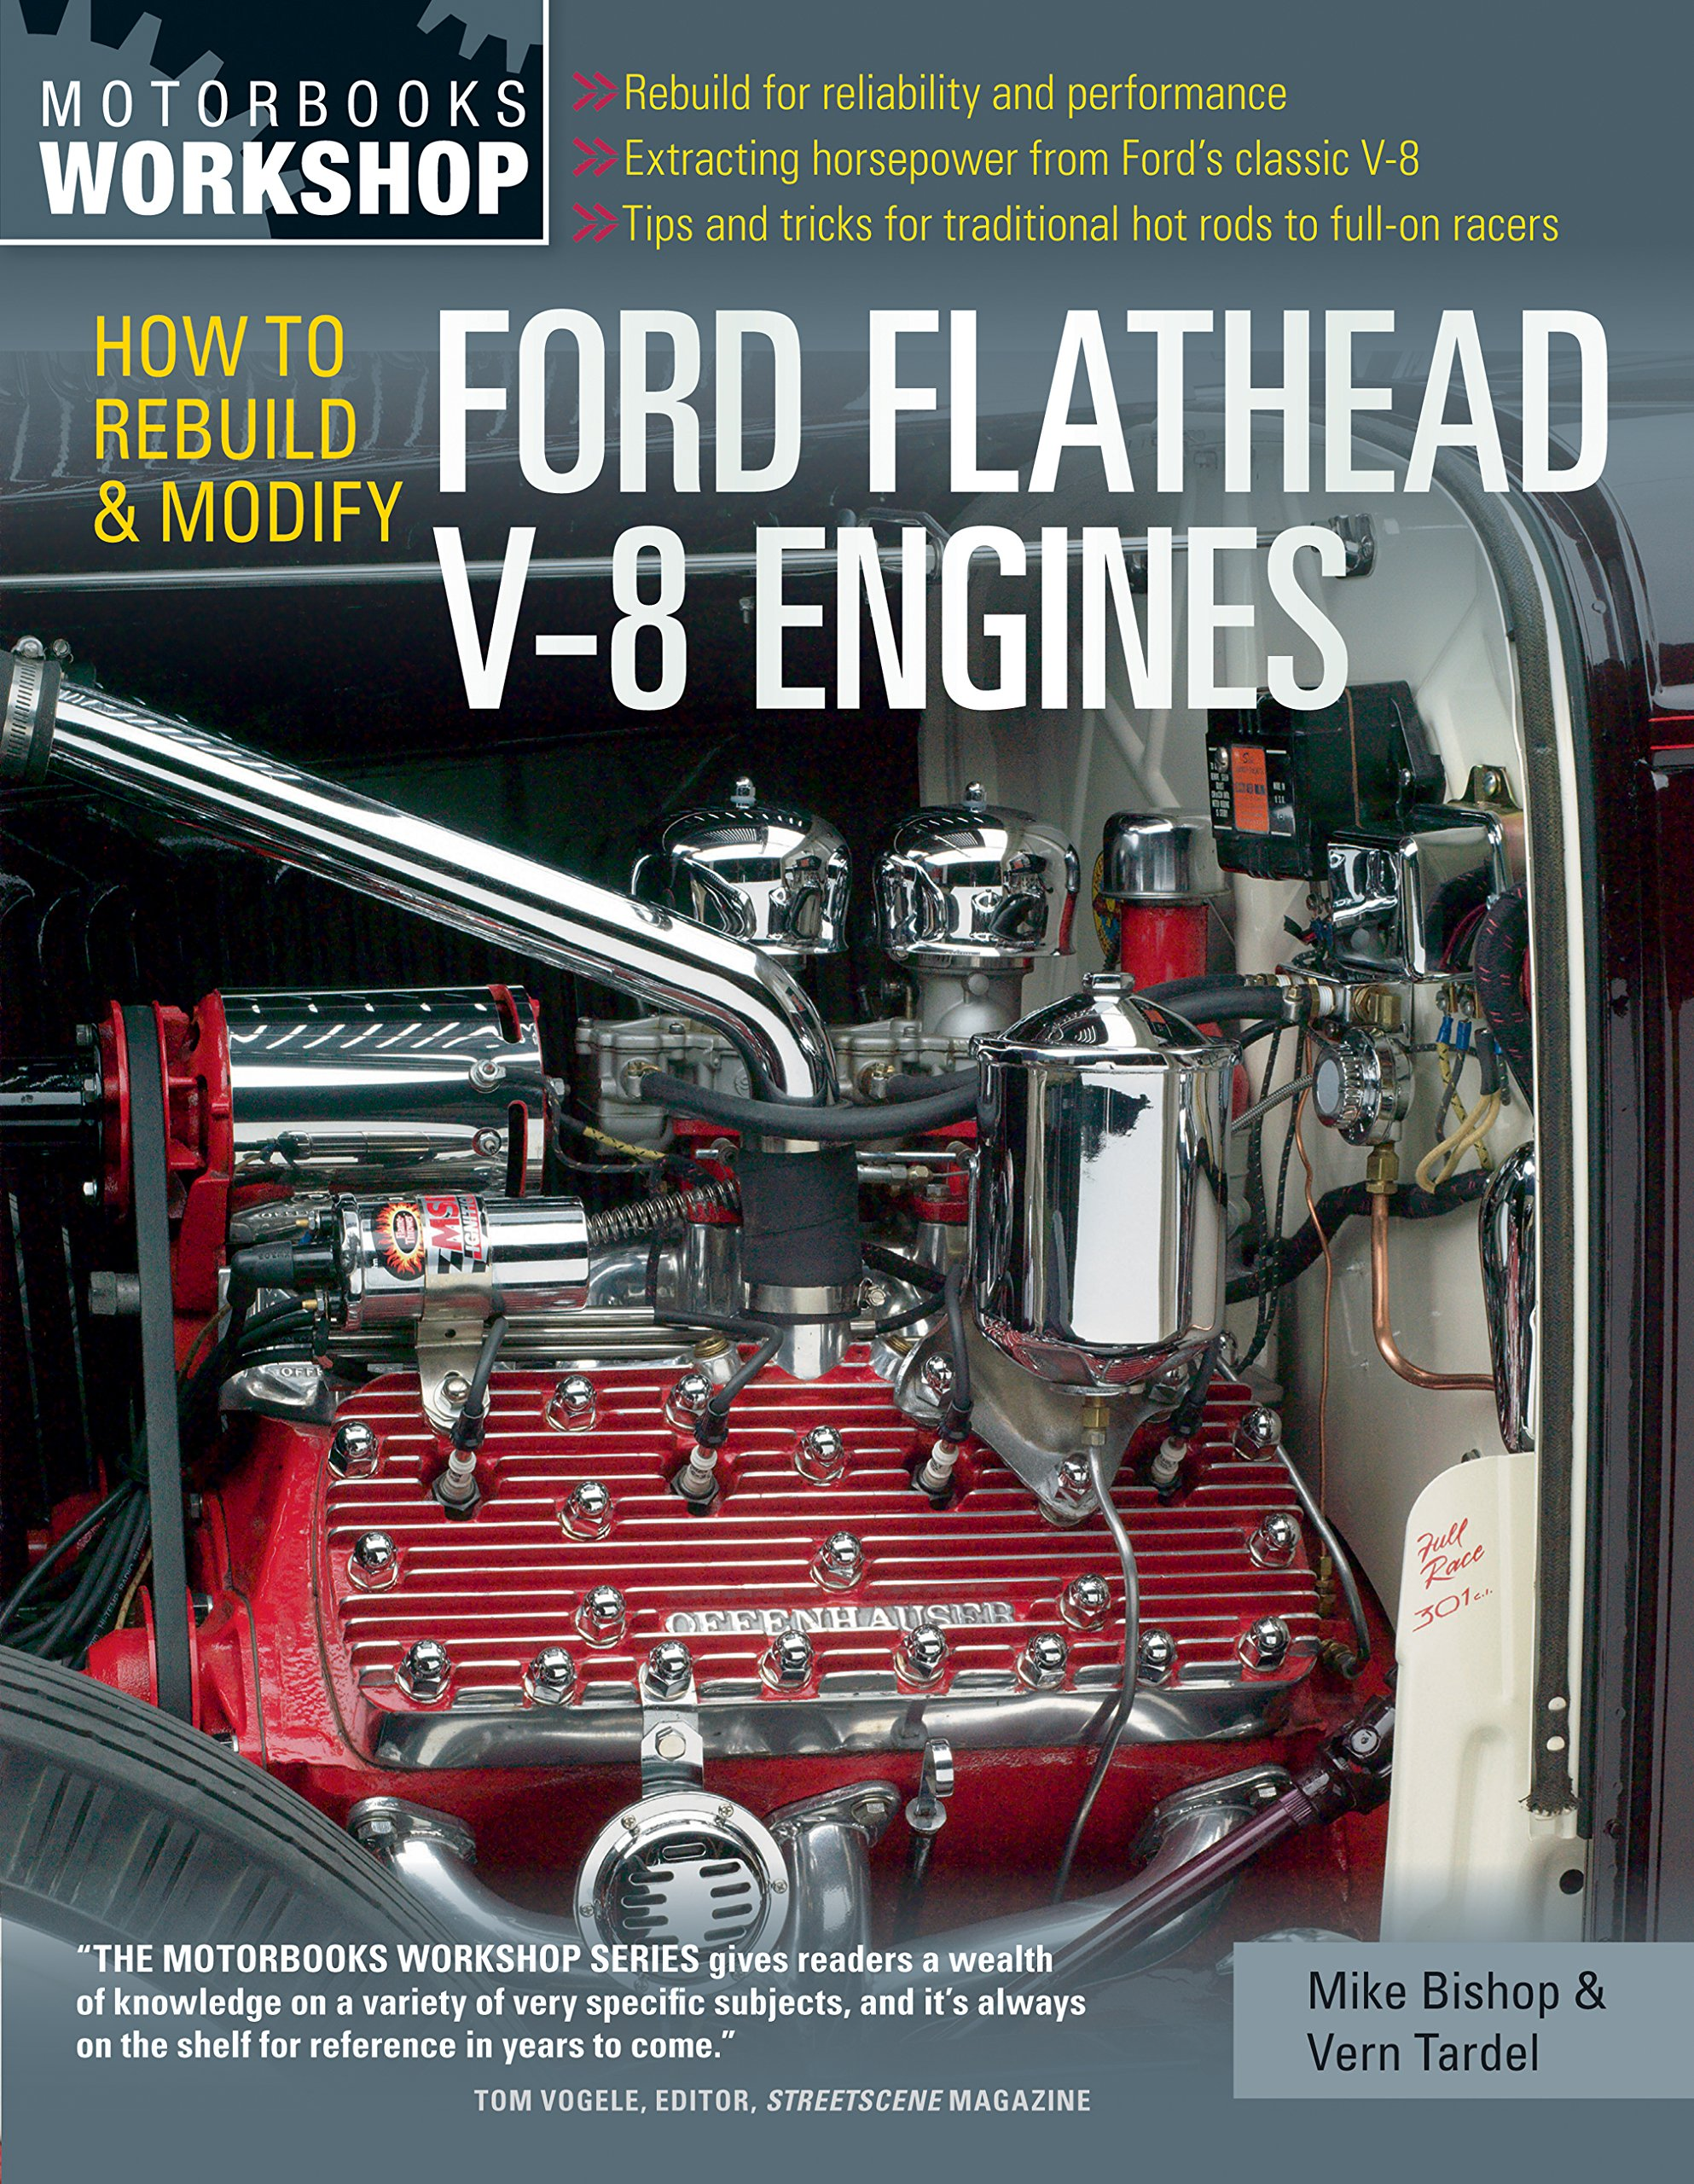 How to rebuild modify ford flathead v 8 engines motorbooks workshop mike bishop vern tardel 0752748343993 amazon com books